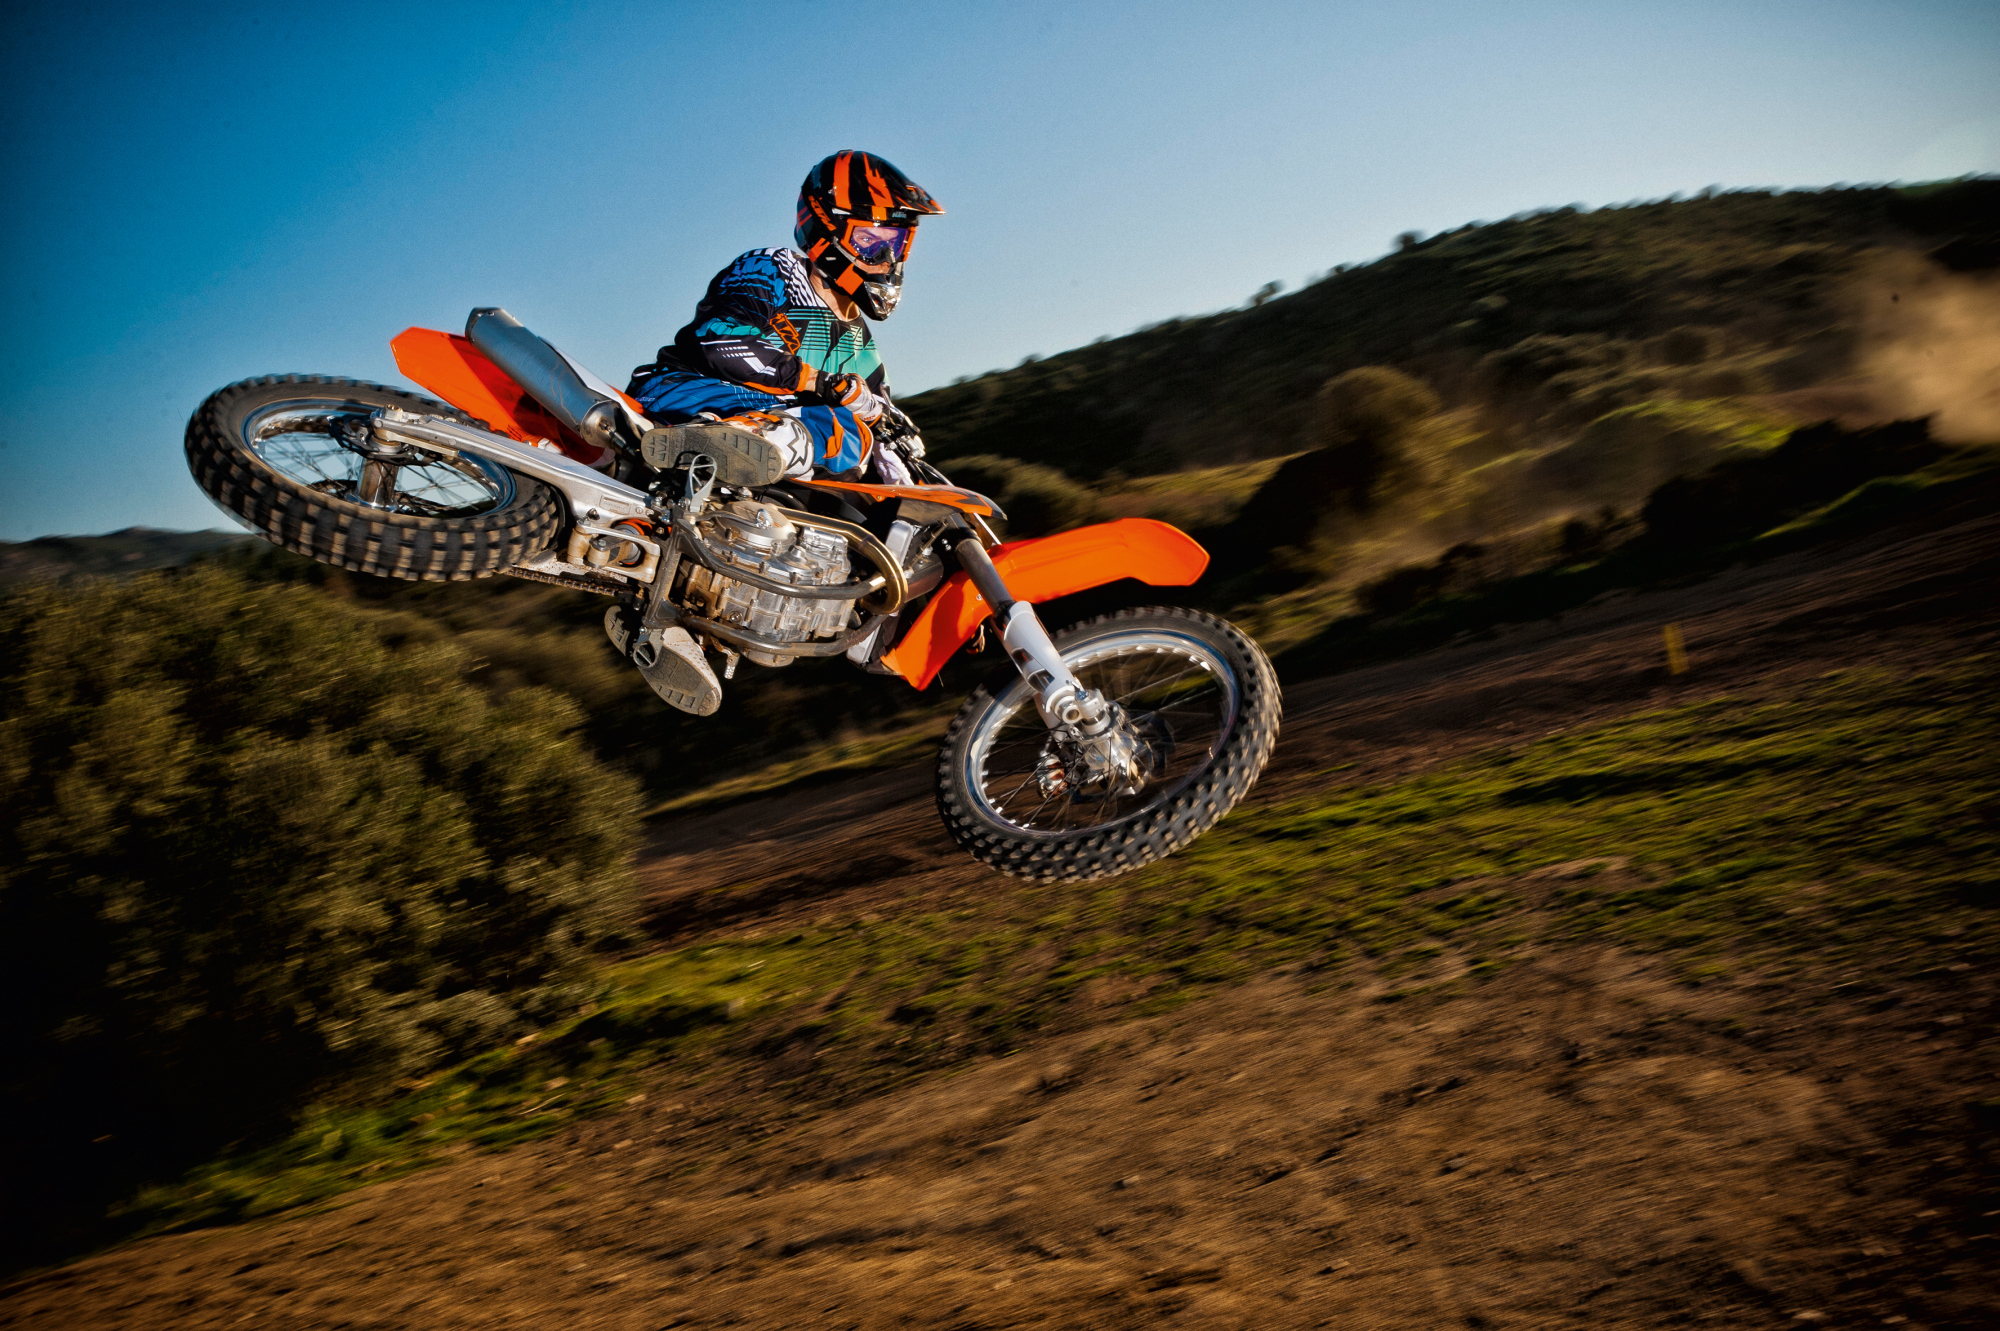 KTM Motocross Wallpaper PC 7969 Wallpaper High Resolution Wallarthd 2000x1331